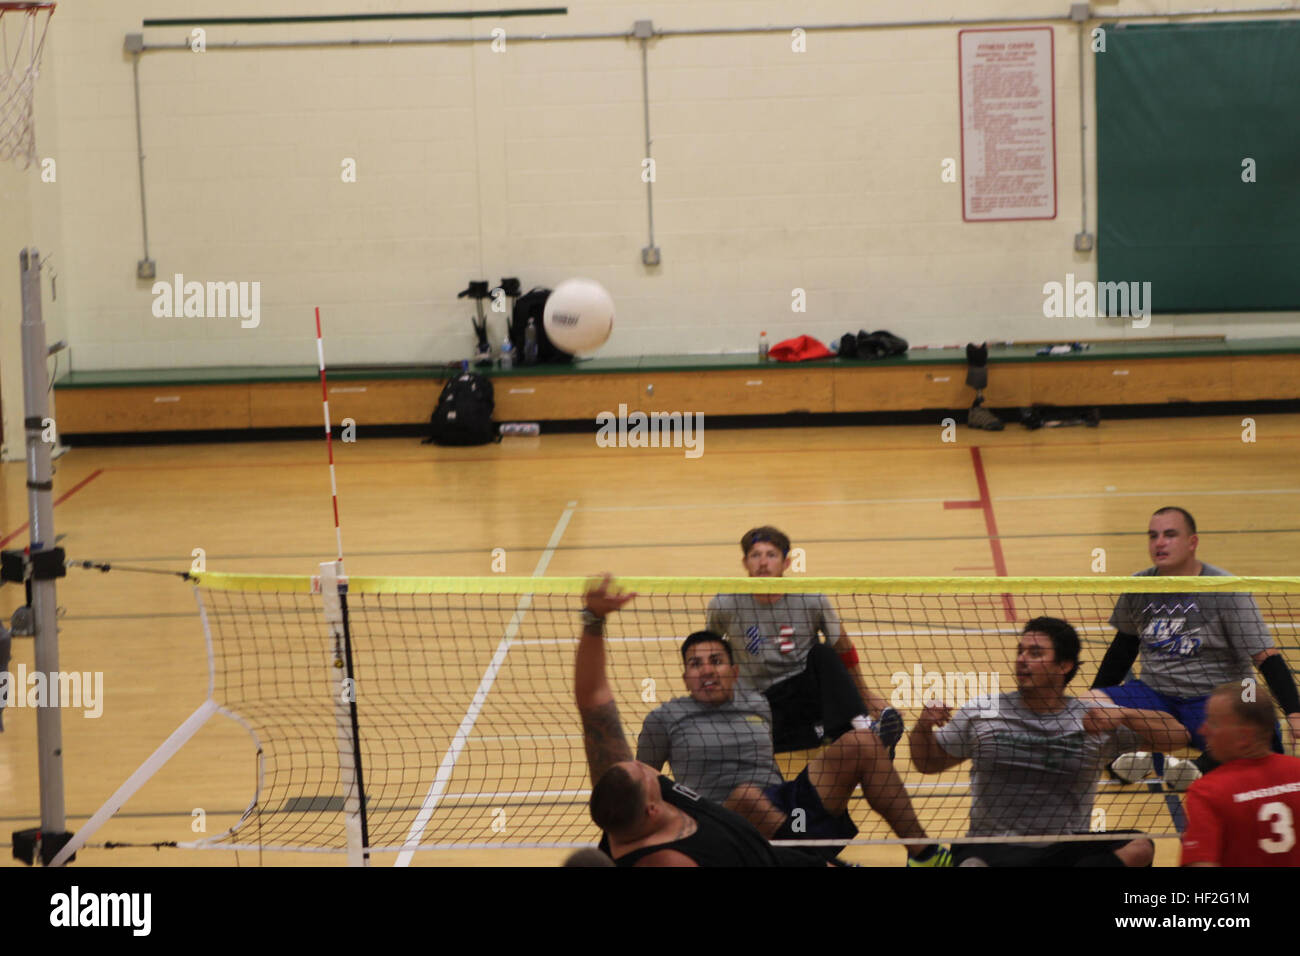 Sgt. Michael Wishnia, a native of Livingston, New Jersey, reaches to return a volley during sitting volleyball practice - Stock Image